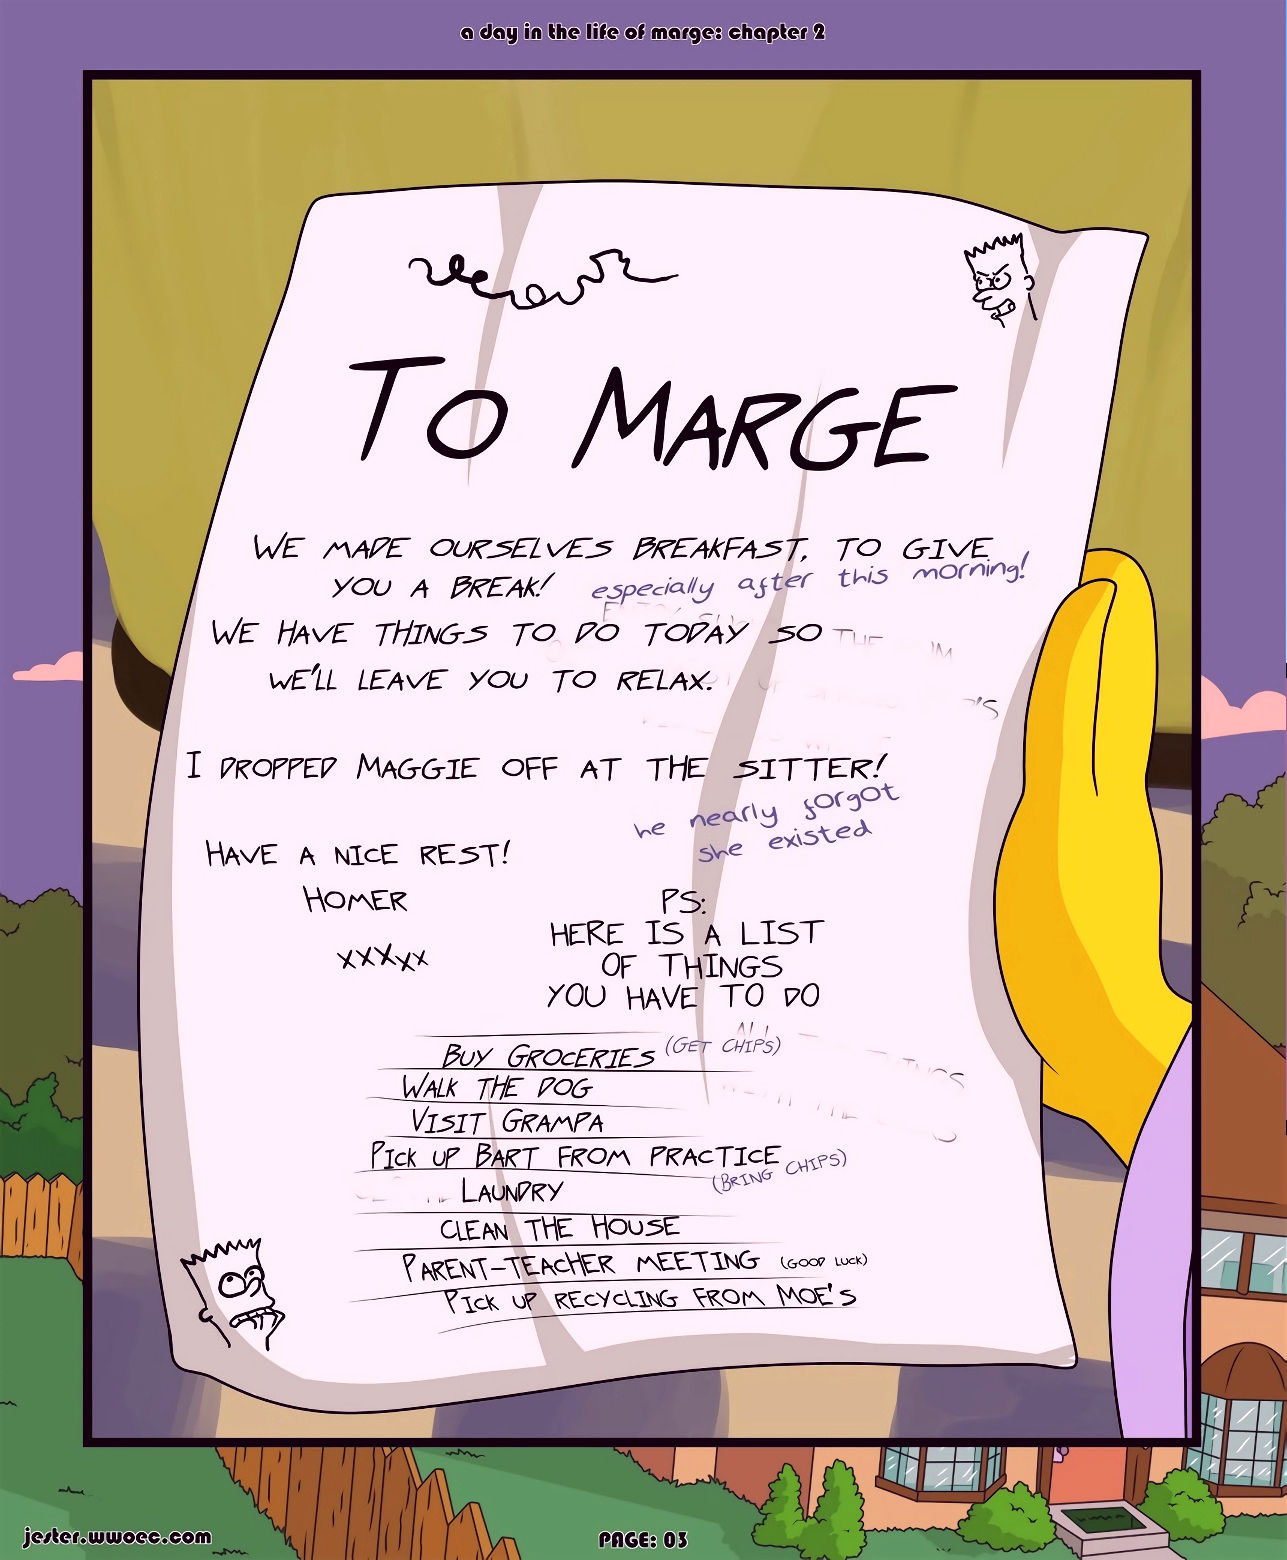 A day in the life of marge 2 porn comic picture 03